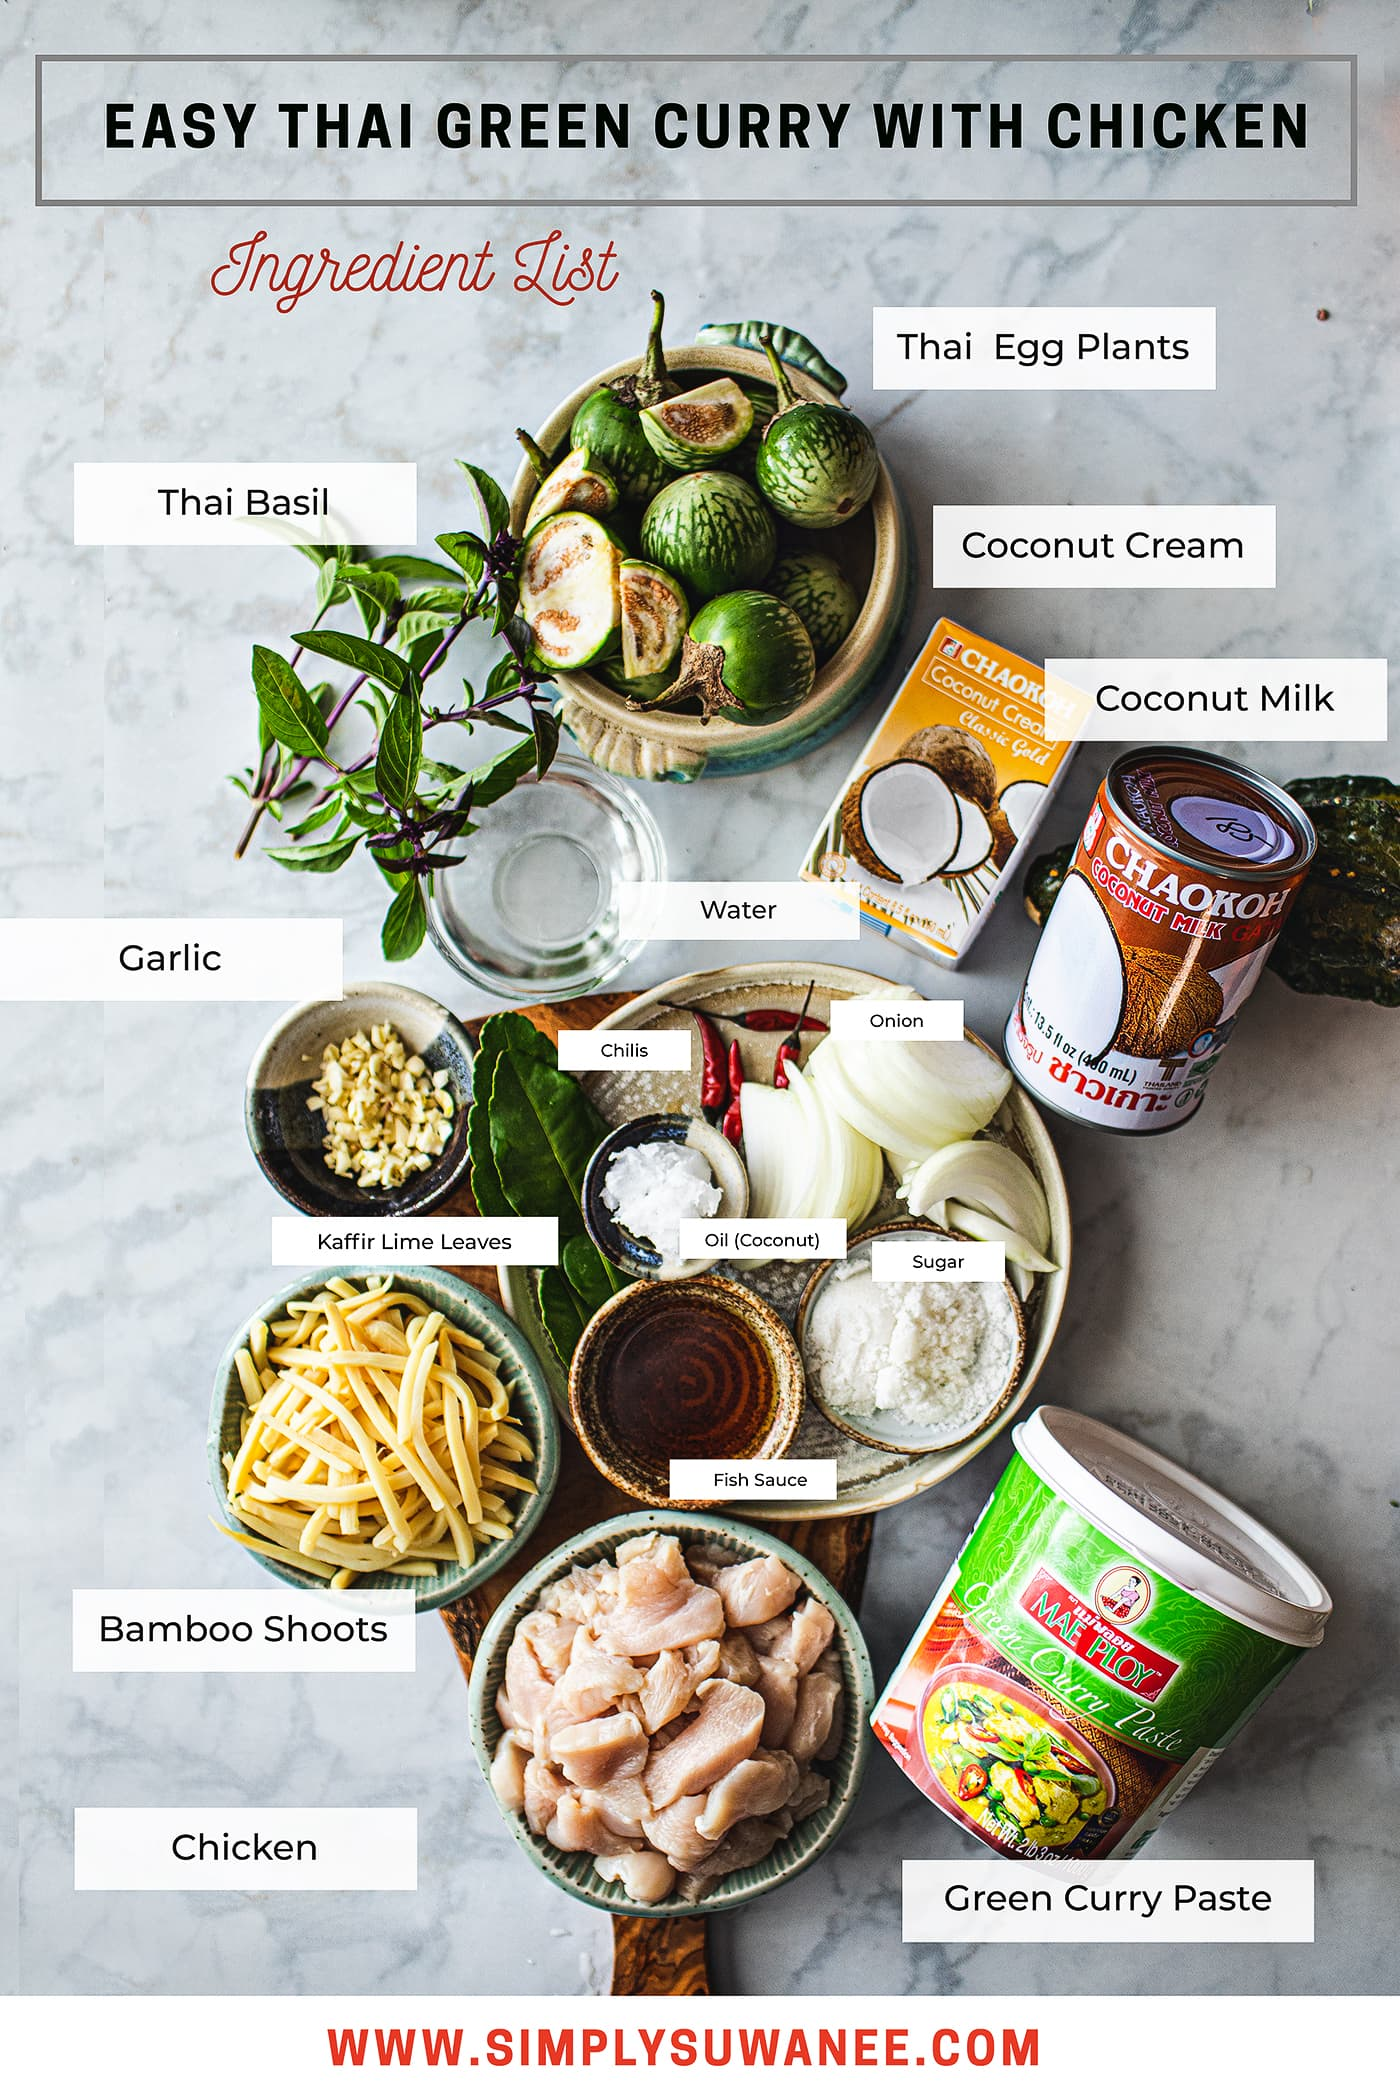 This easy green curry recipe that is filled with incredible flavor from the green curry paste cooked in coconut milk, chicken, bamboo shoots, kaffir lime leaves and Thai eggplants. You can have this authentic Thai green curry for dinner in less than 30 minutes! #thaigreencurry #greencurry #greencurryrecipe #thaicurry